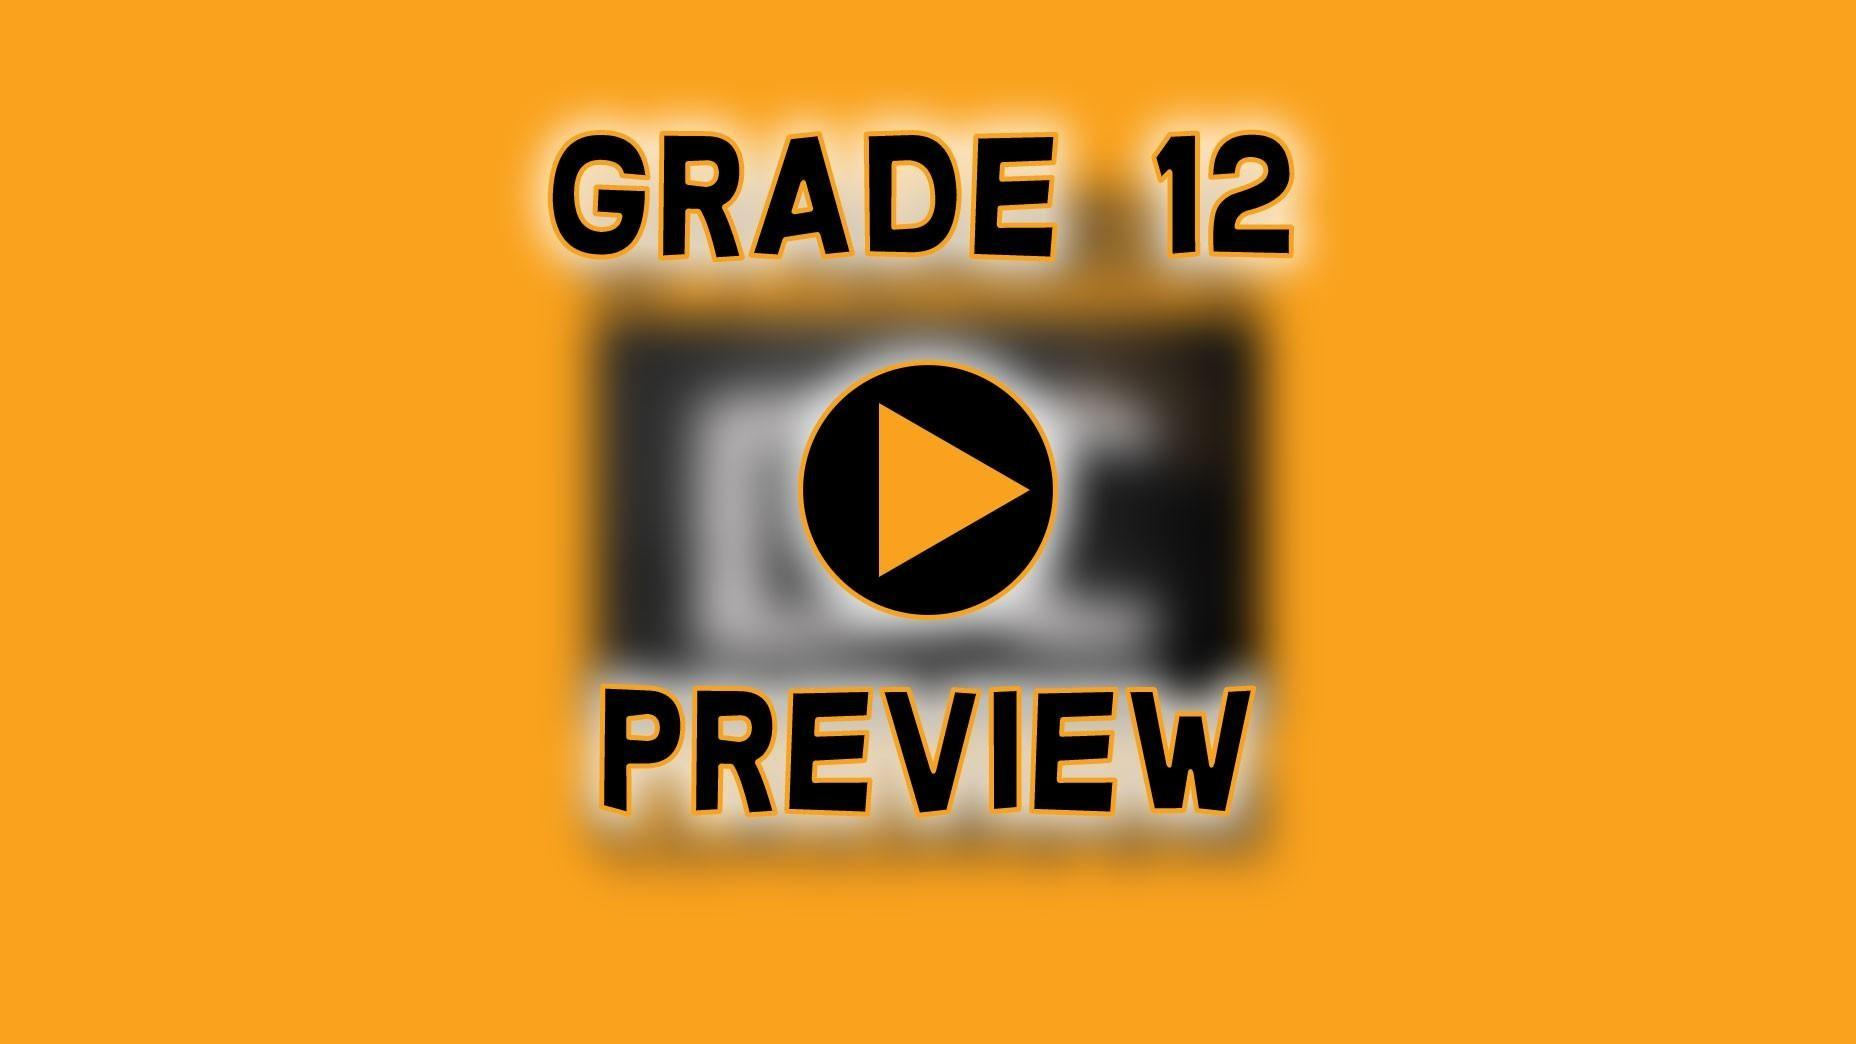 Video Poster Image